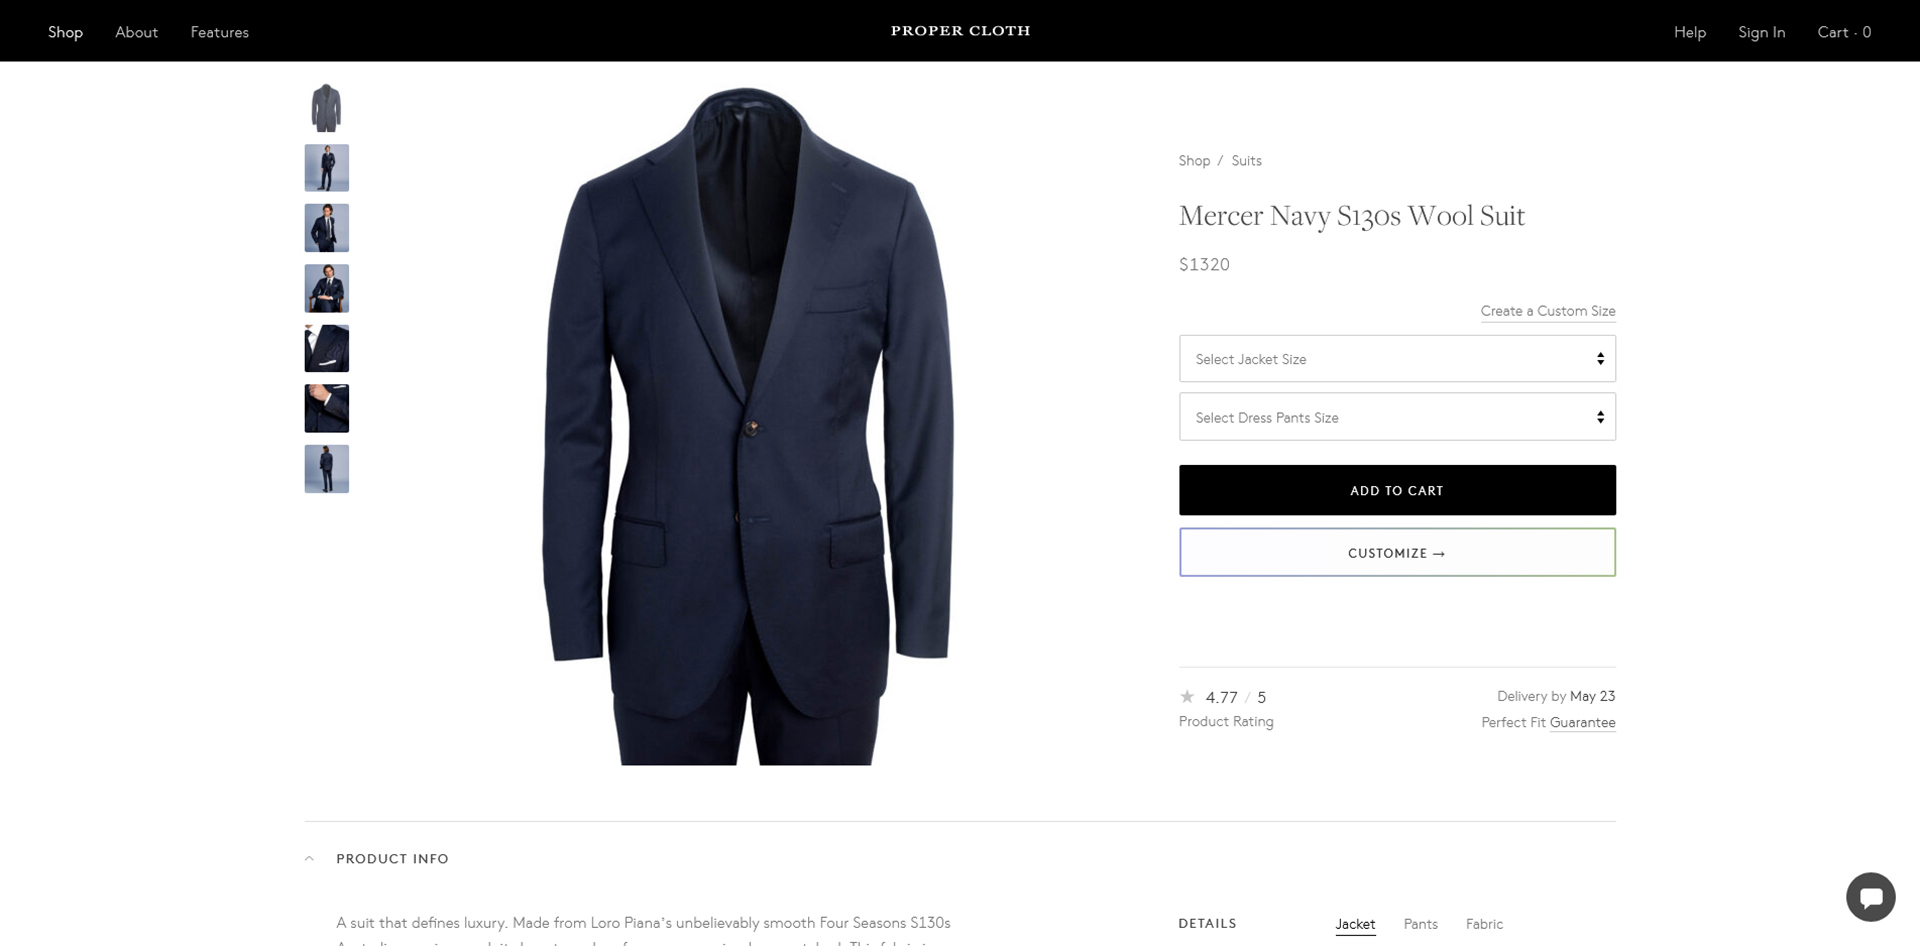 Proper Cloth made-to-measure online customization